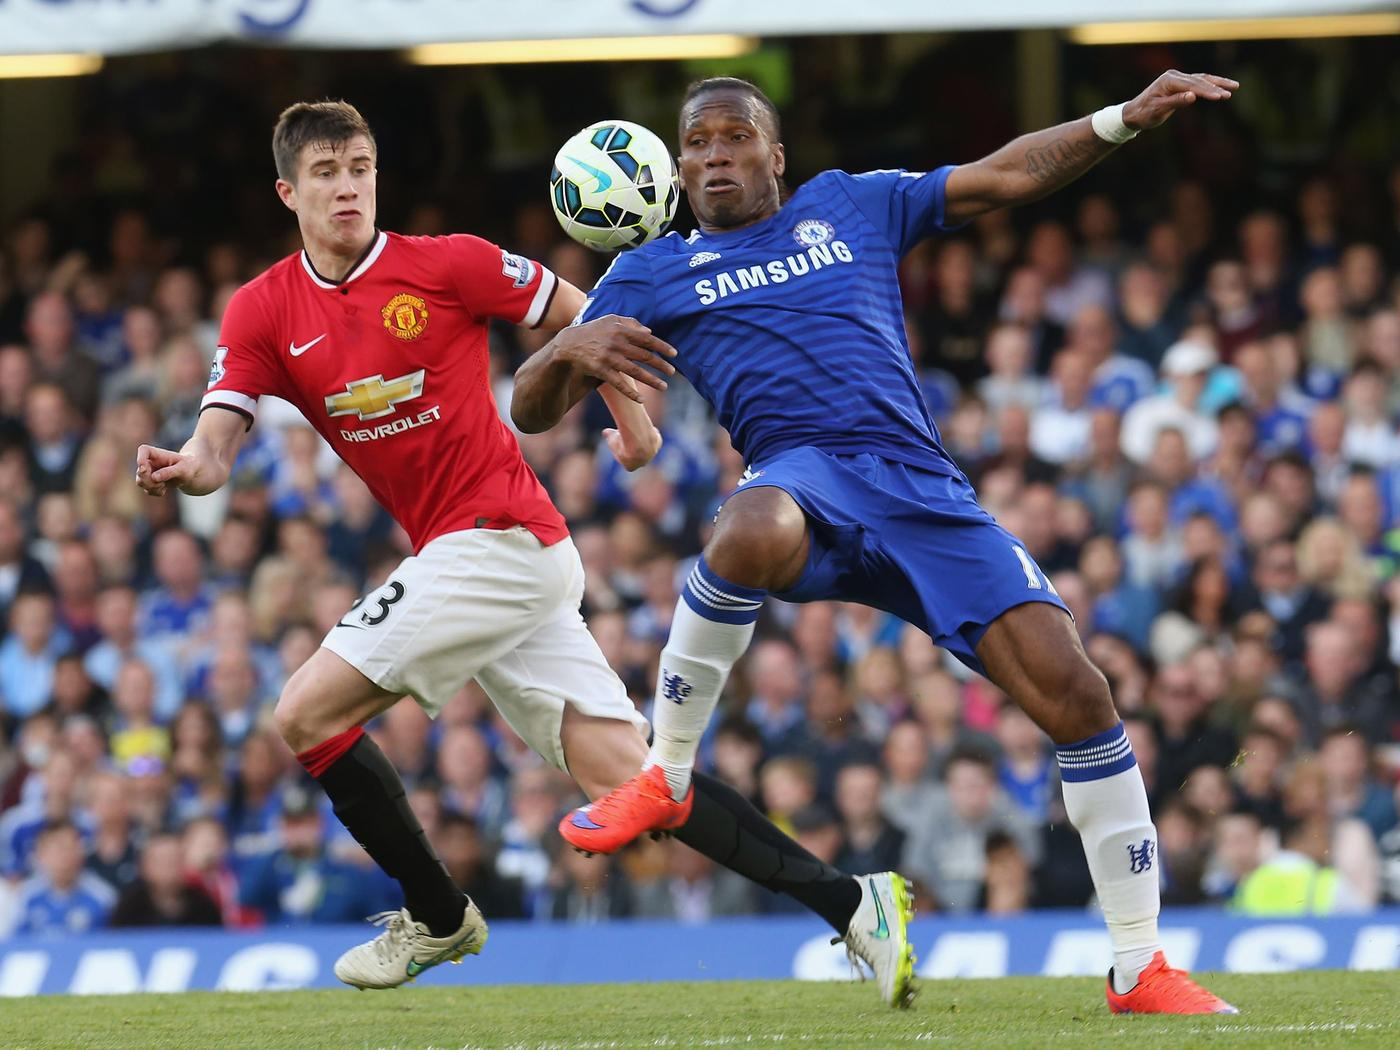 Jose Mourinho suggests Didier Drogba's Chelsea future down to owner Roman Abramovich